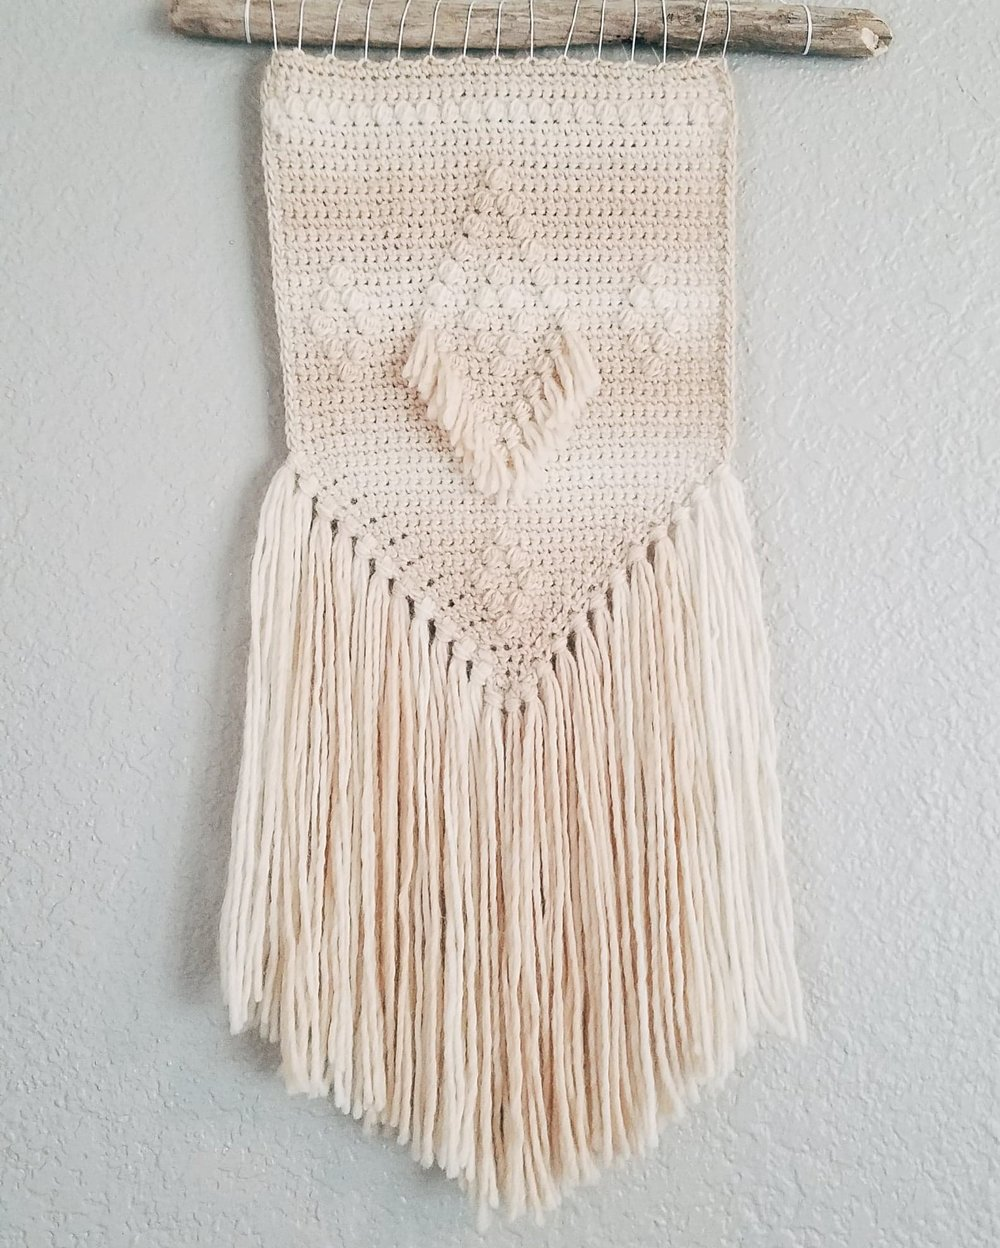 Cusco Wall Hanging - The Homely Alpaca